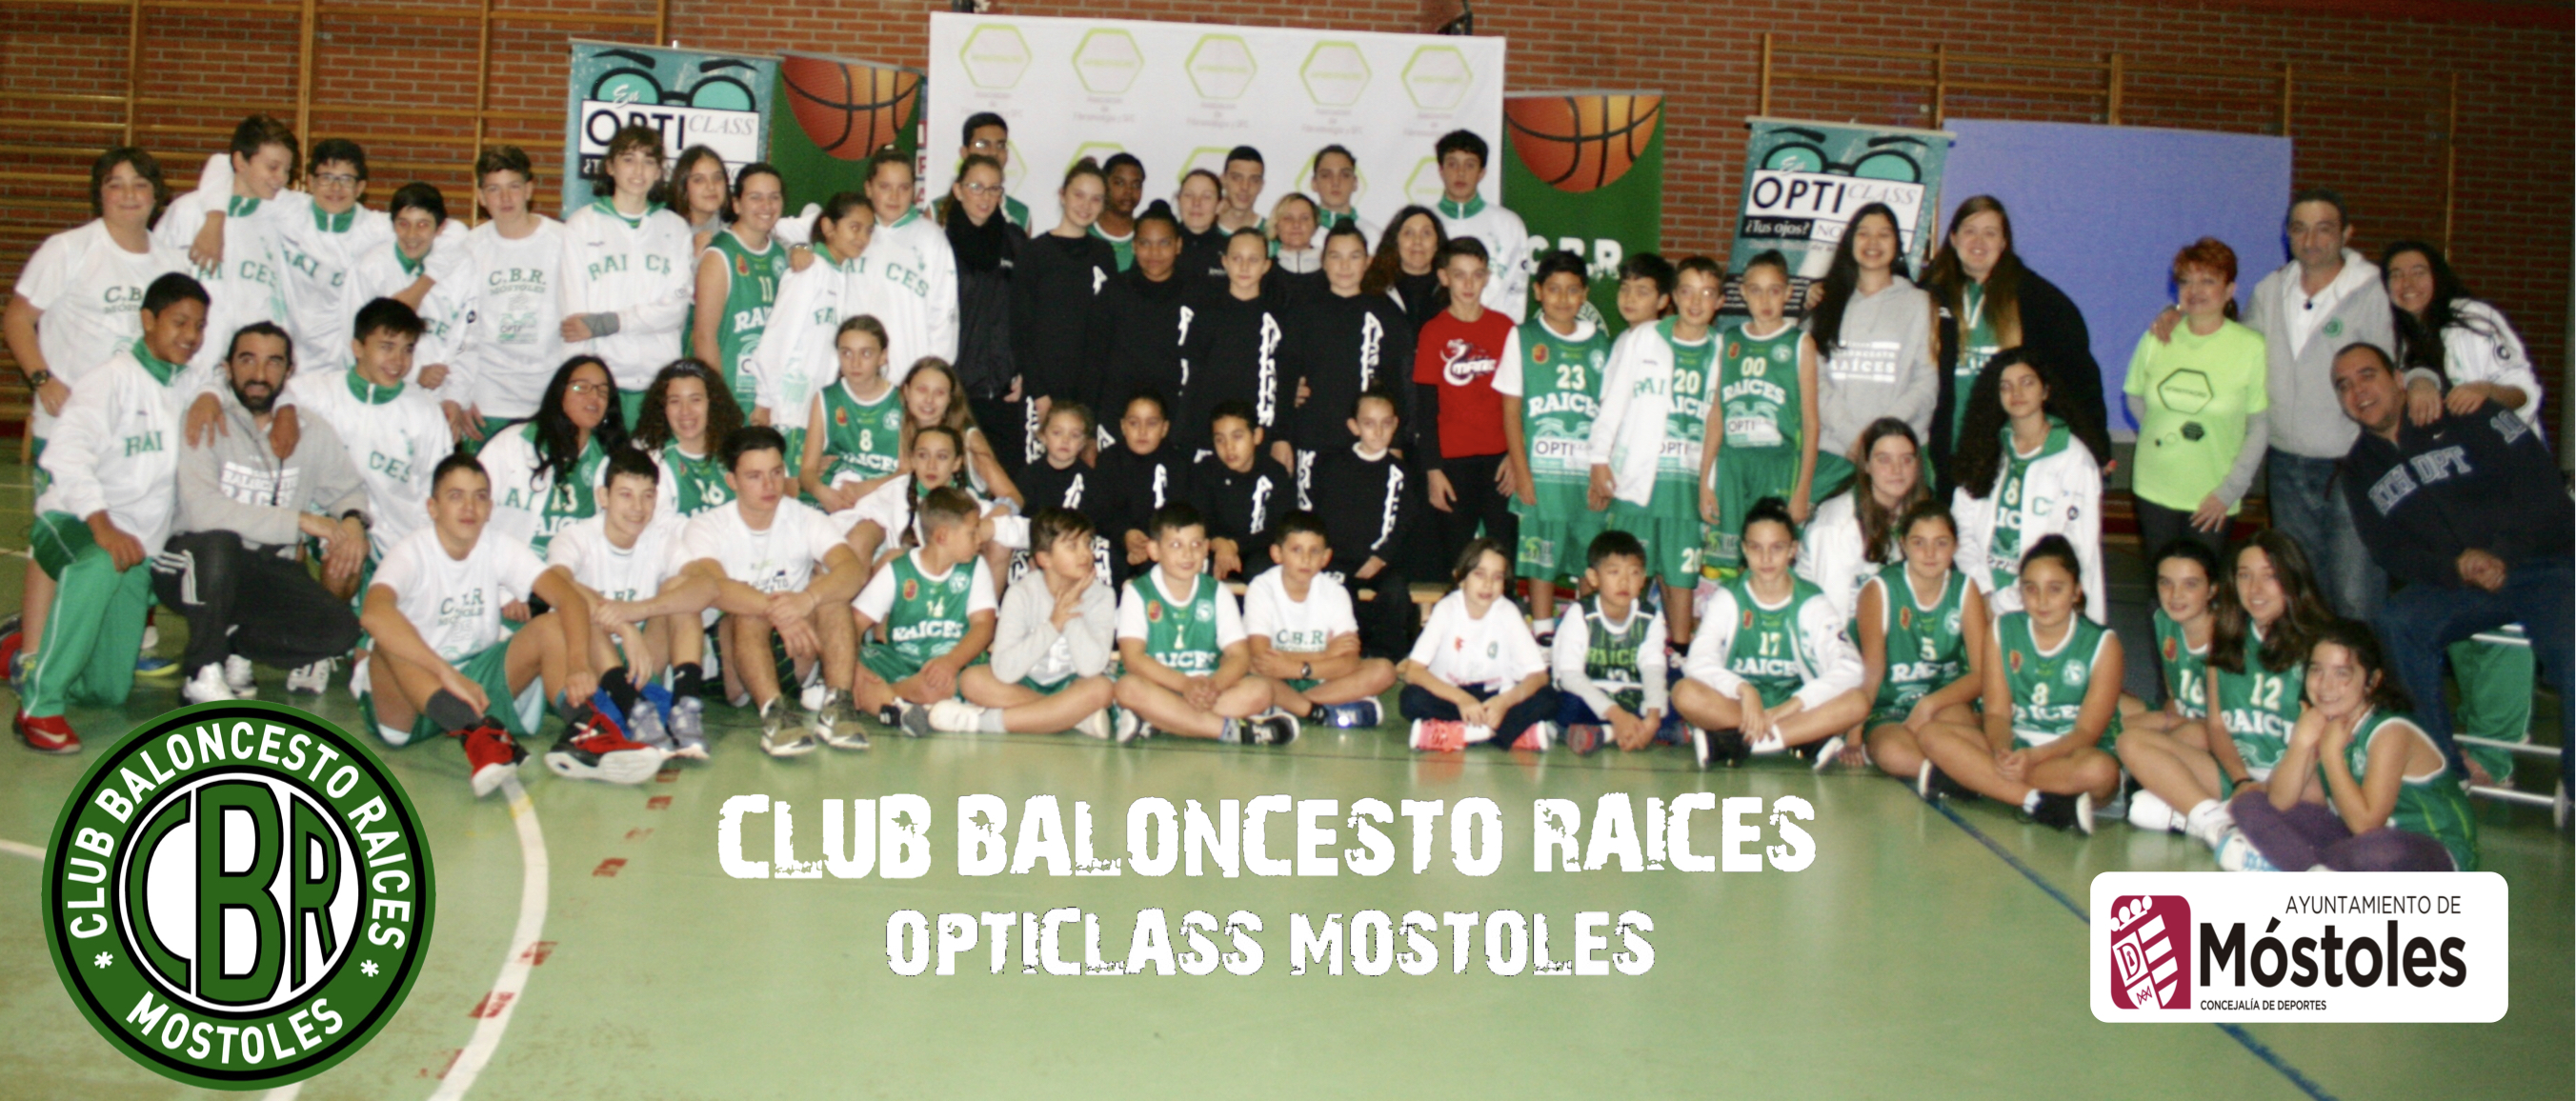 Club Baloncesto Raices Opticlass Móstoles